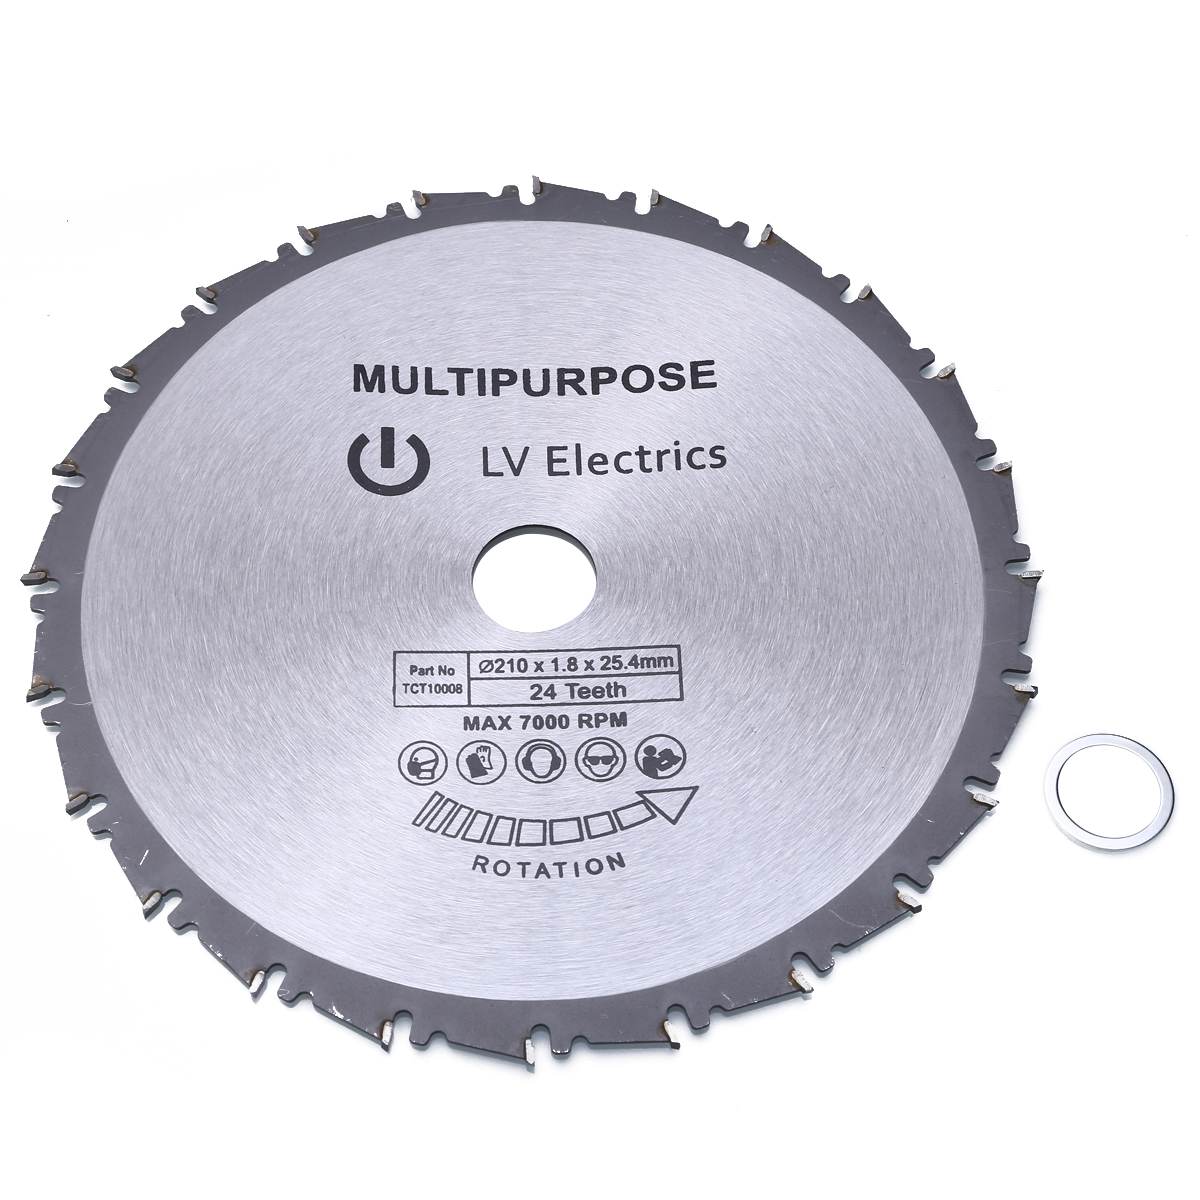 Mayitr 1pcs 210mm Wood Cutting Metal Circular Saw Blades For Tiles Ceramic Wood Aluminum Disc Diamond Cutting Blades